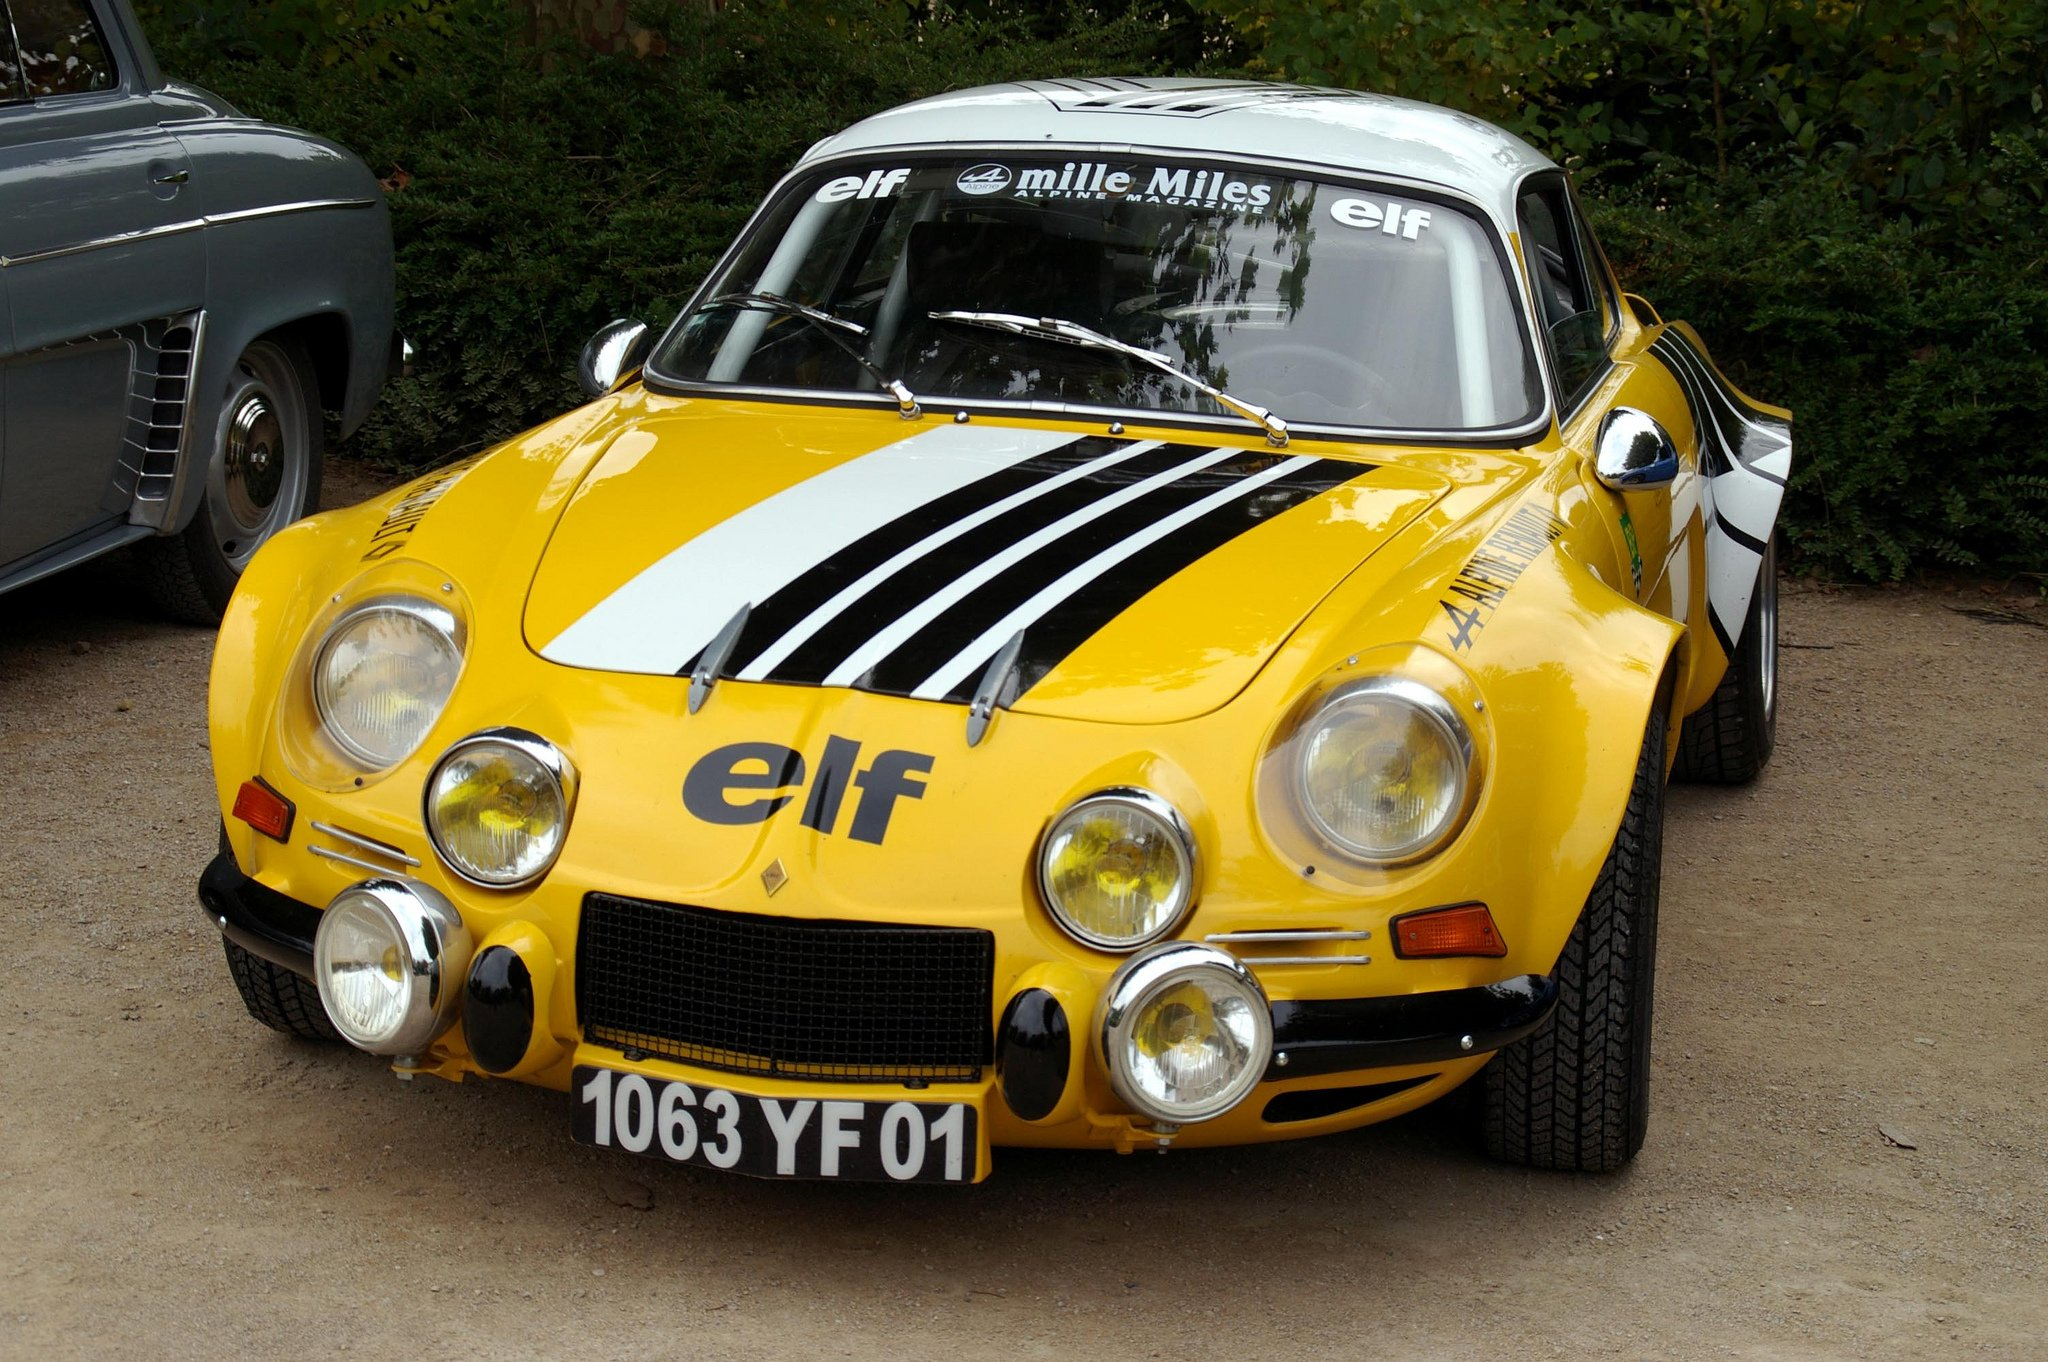 a110 alpine classic renault berlinette cars rallycars french coupe wallpaper 2048x1362. Black Bedroom Furniture Sets. Home Design Ideas